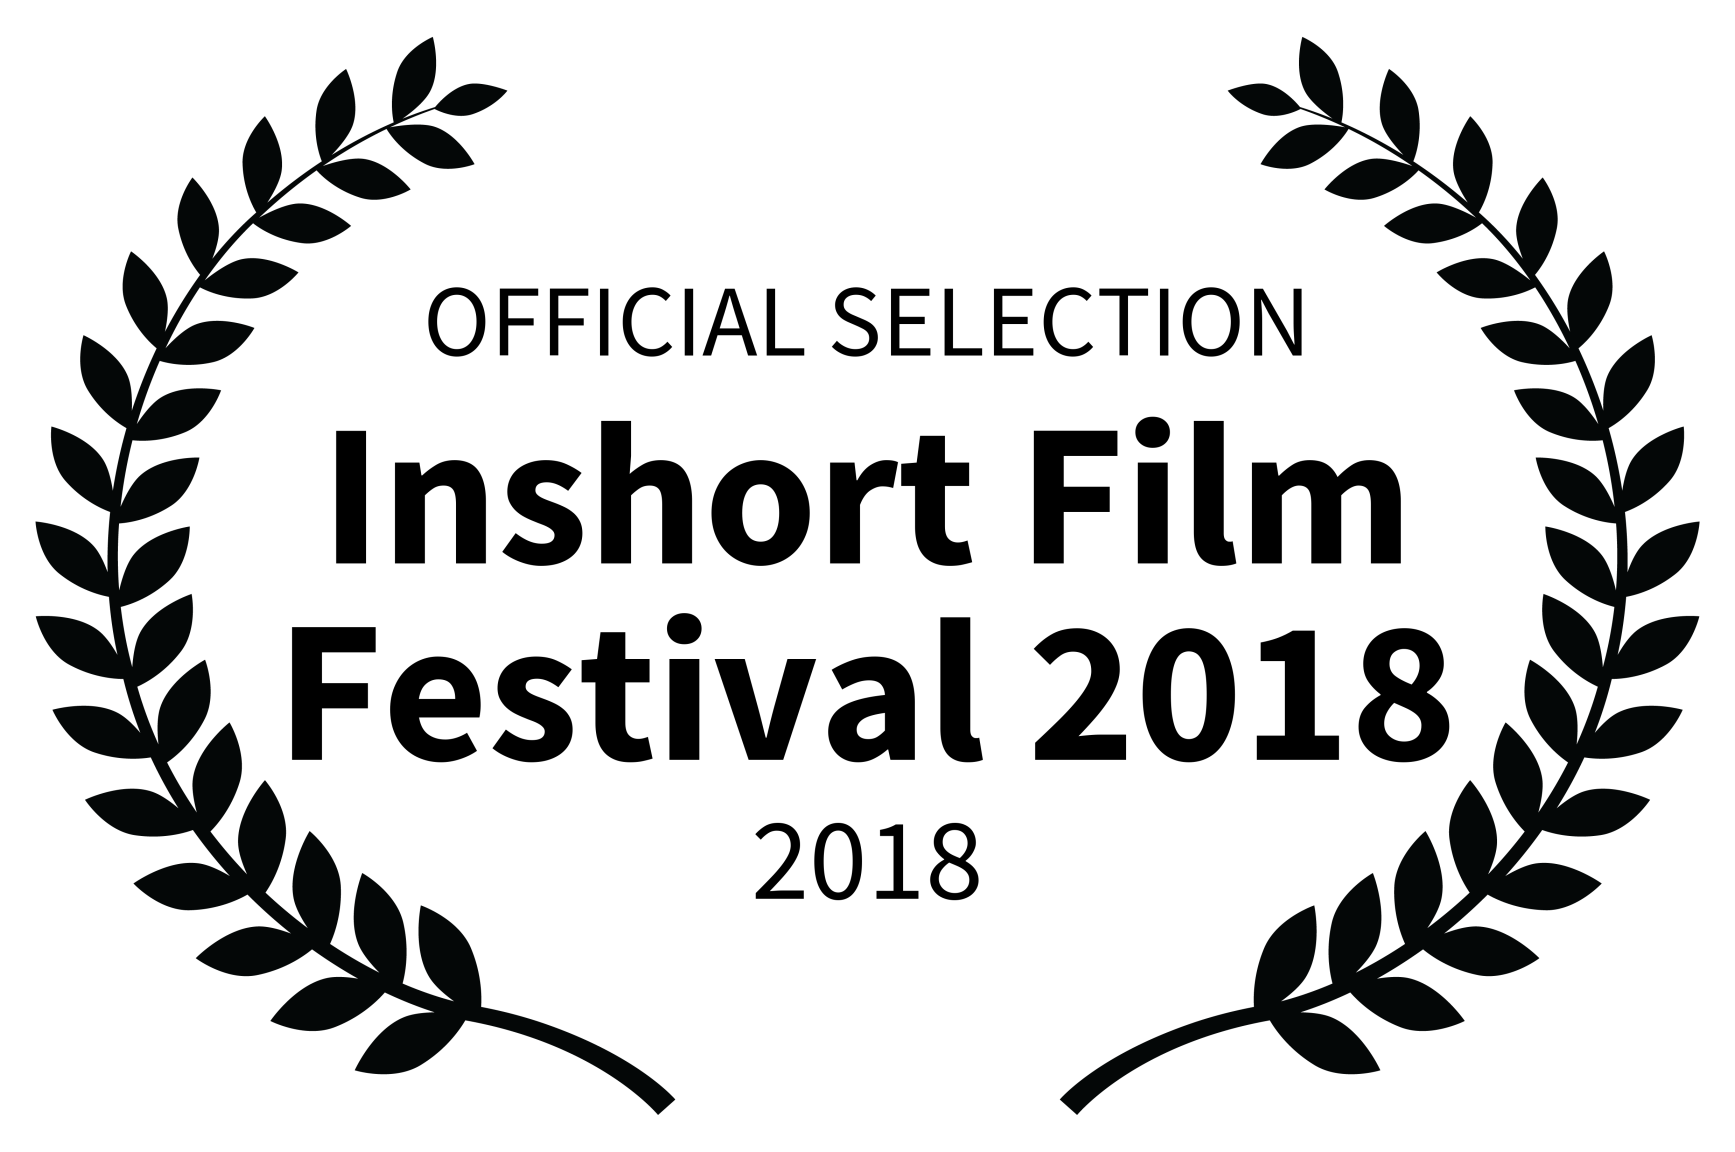 OFFICIAL SELECTION - Inshort Film Festival 2018 - 2018.png